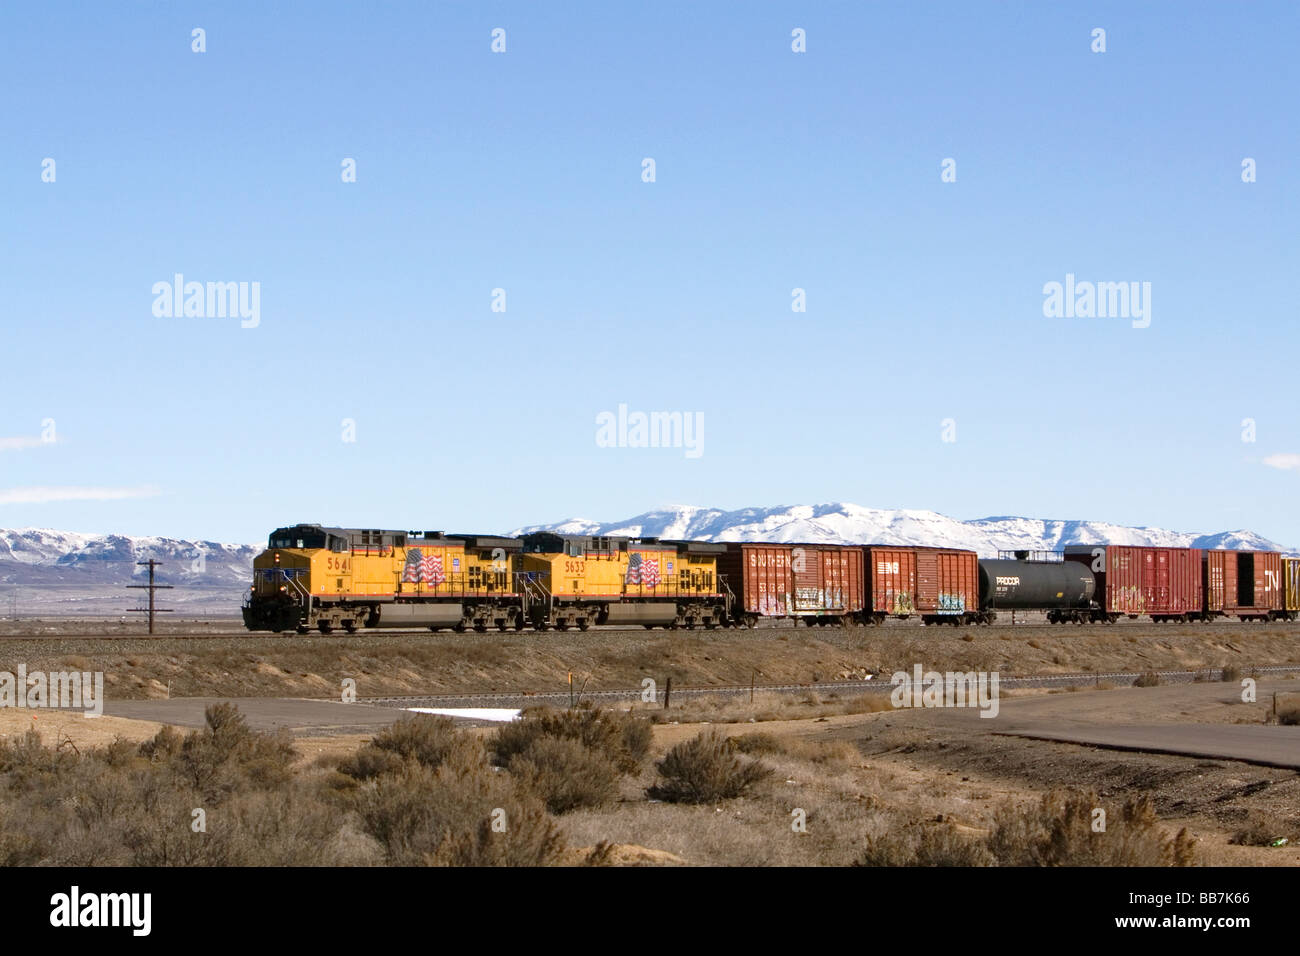 Freight train east of Boise Idaho - Stock Image